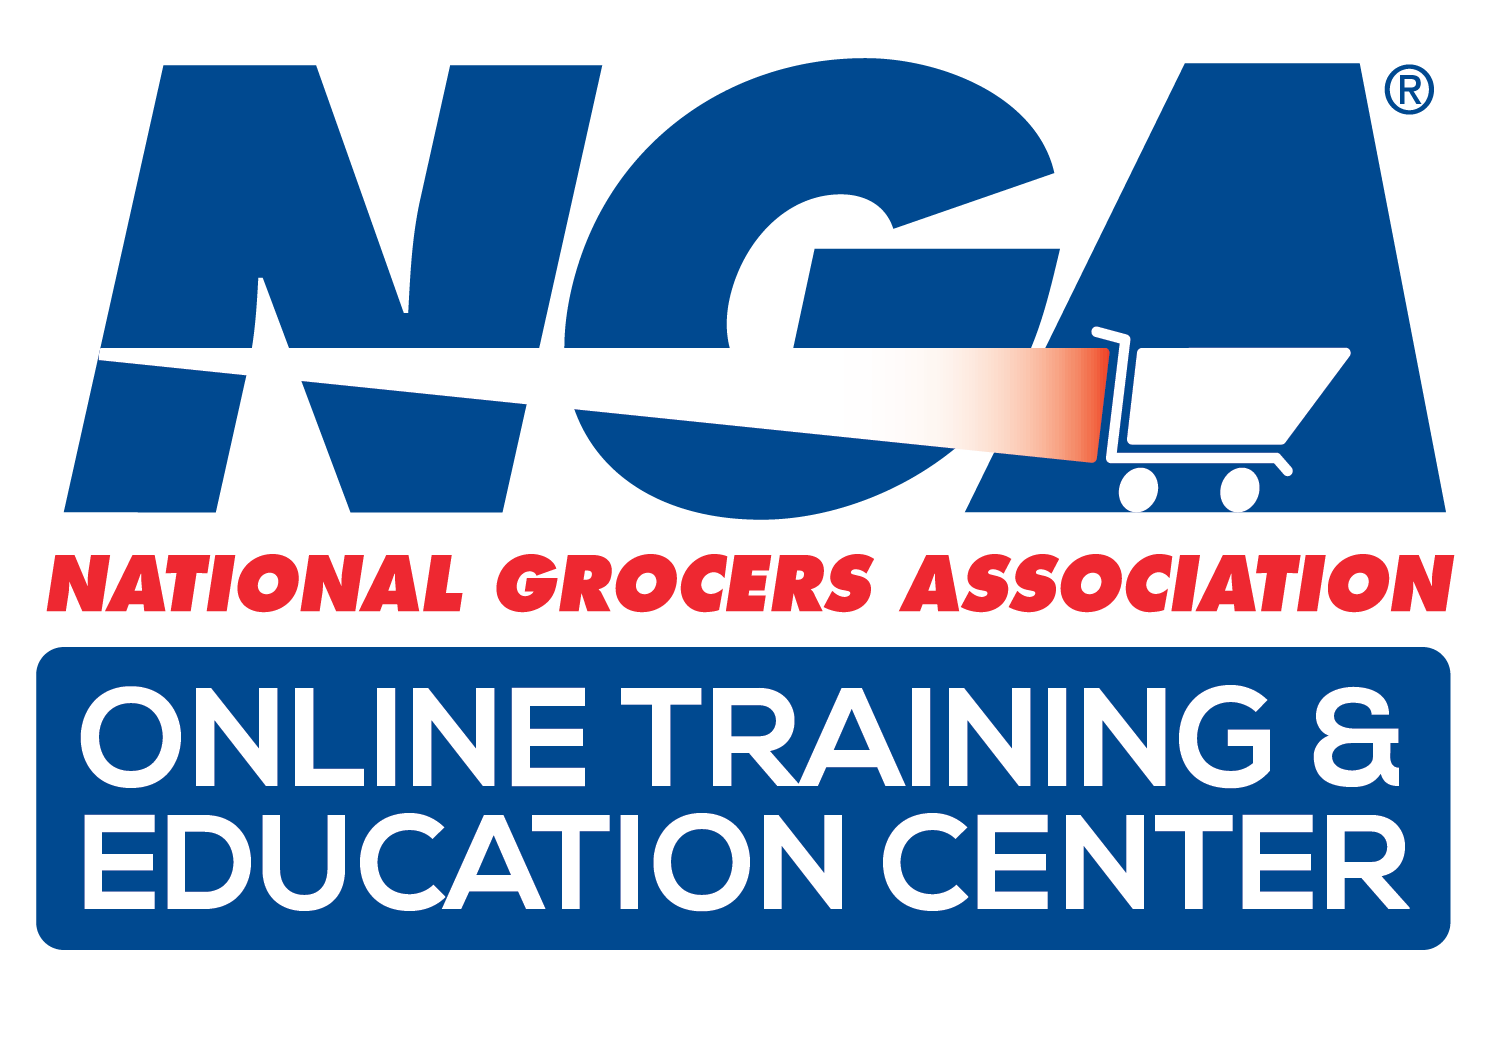 NGA Online Training Center